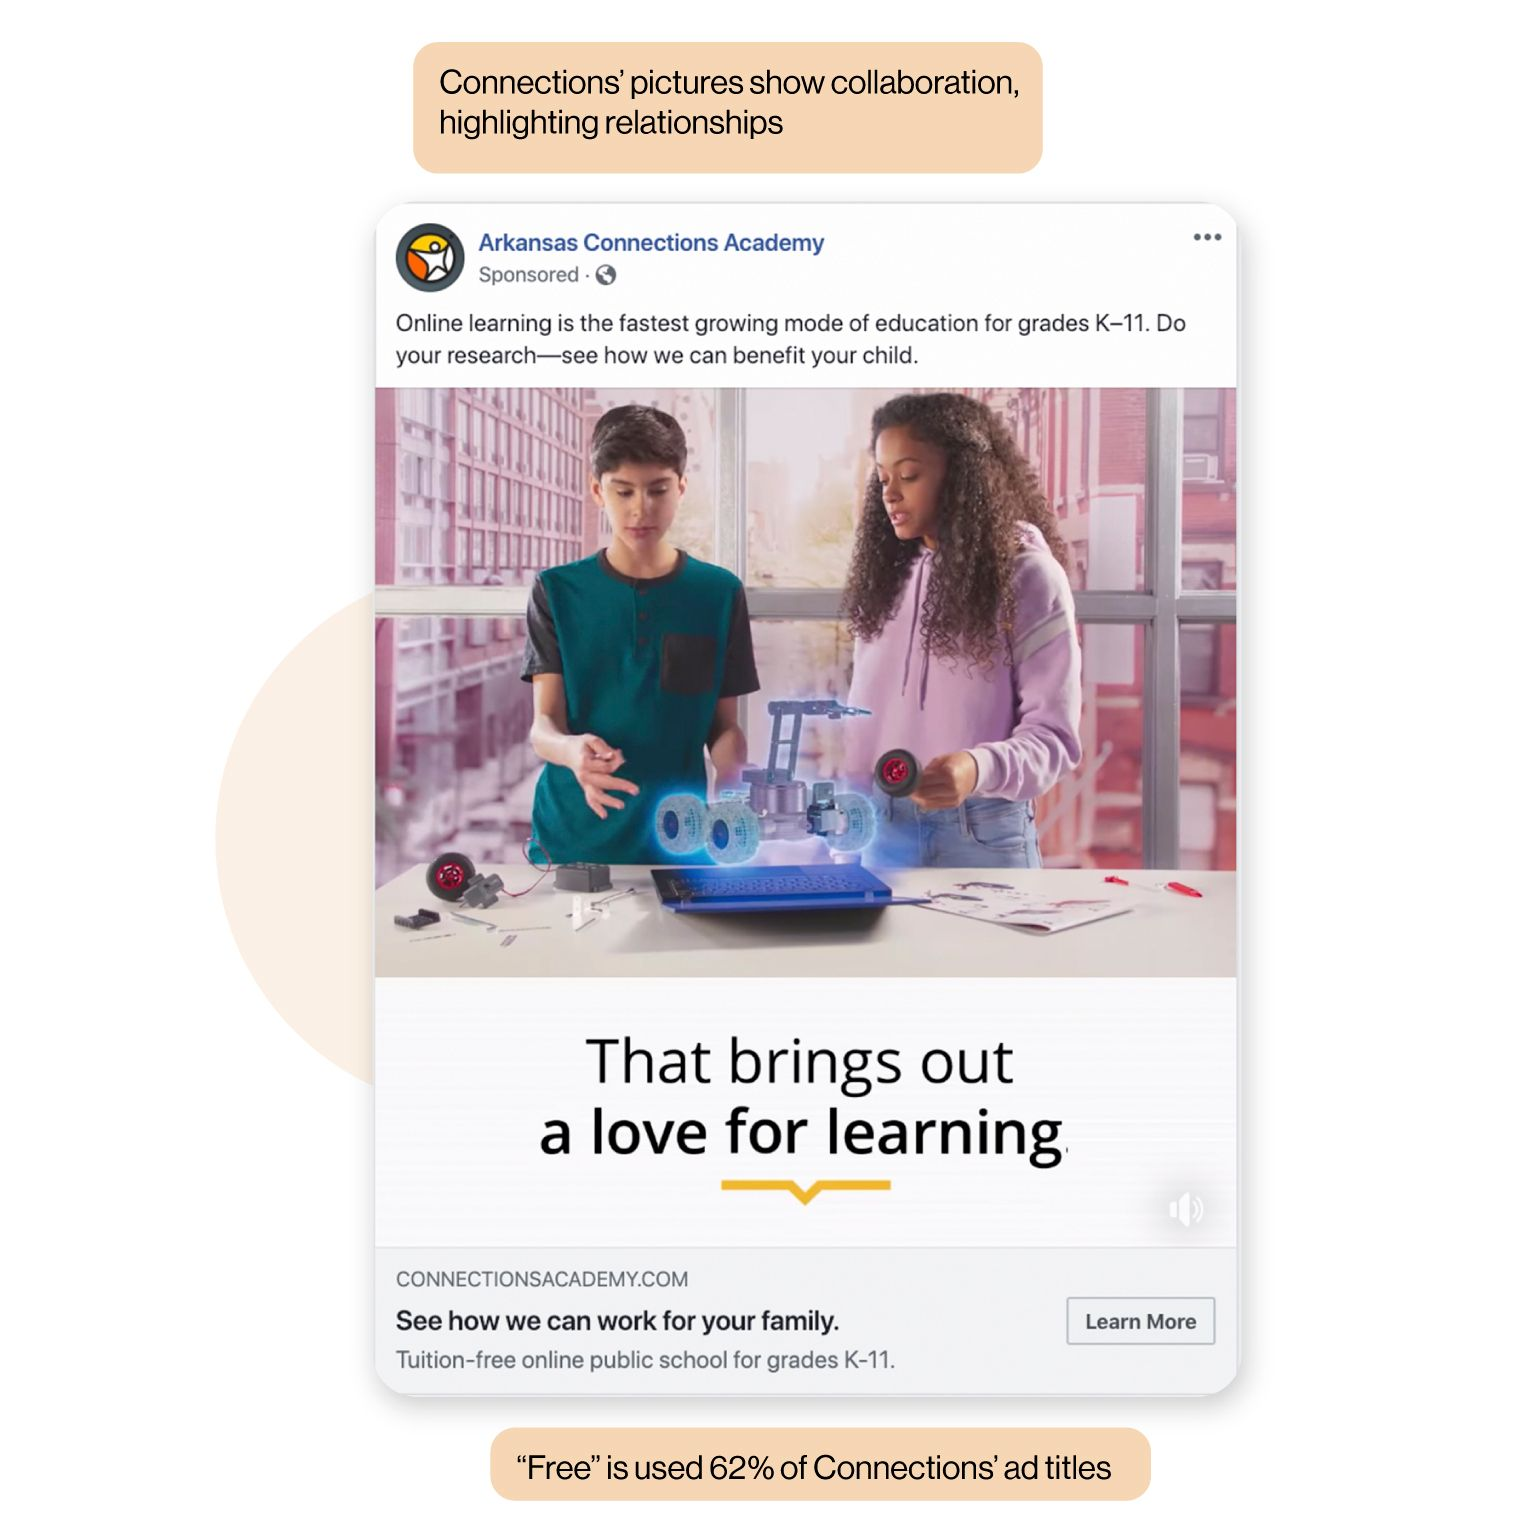 Image: A K12 Inc. Facebook ad showing two students working together on a hologram reemphasizing collaboration.